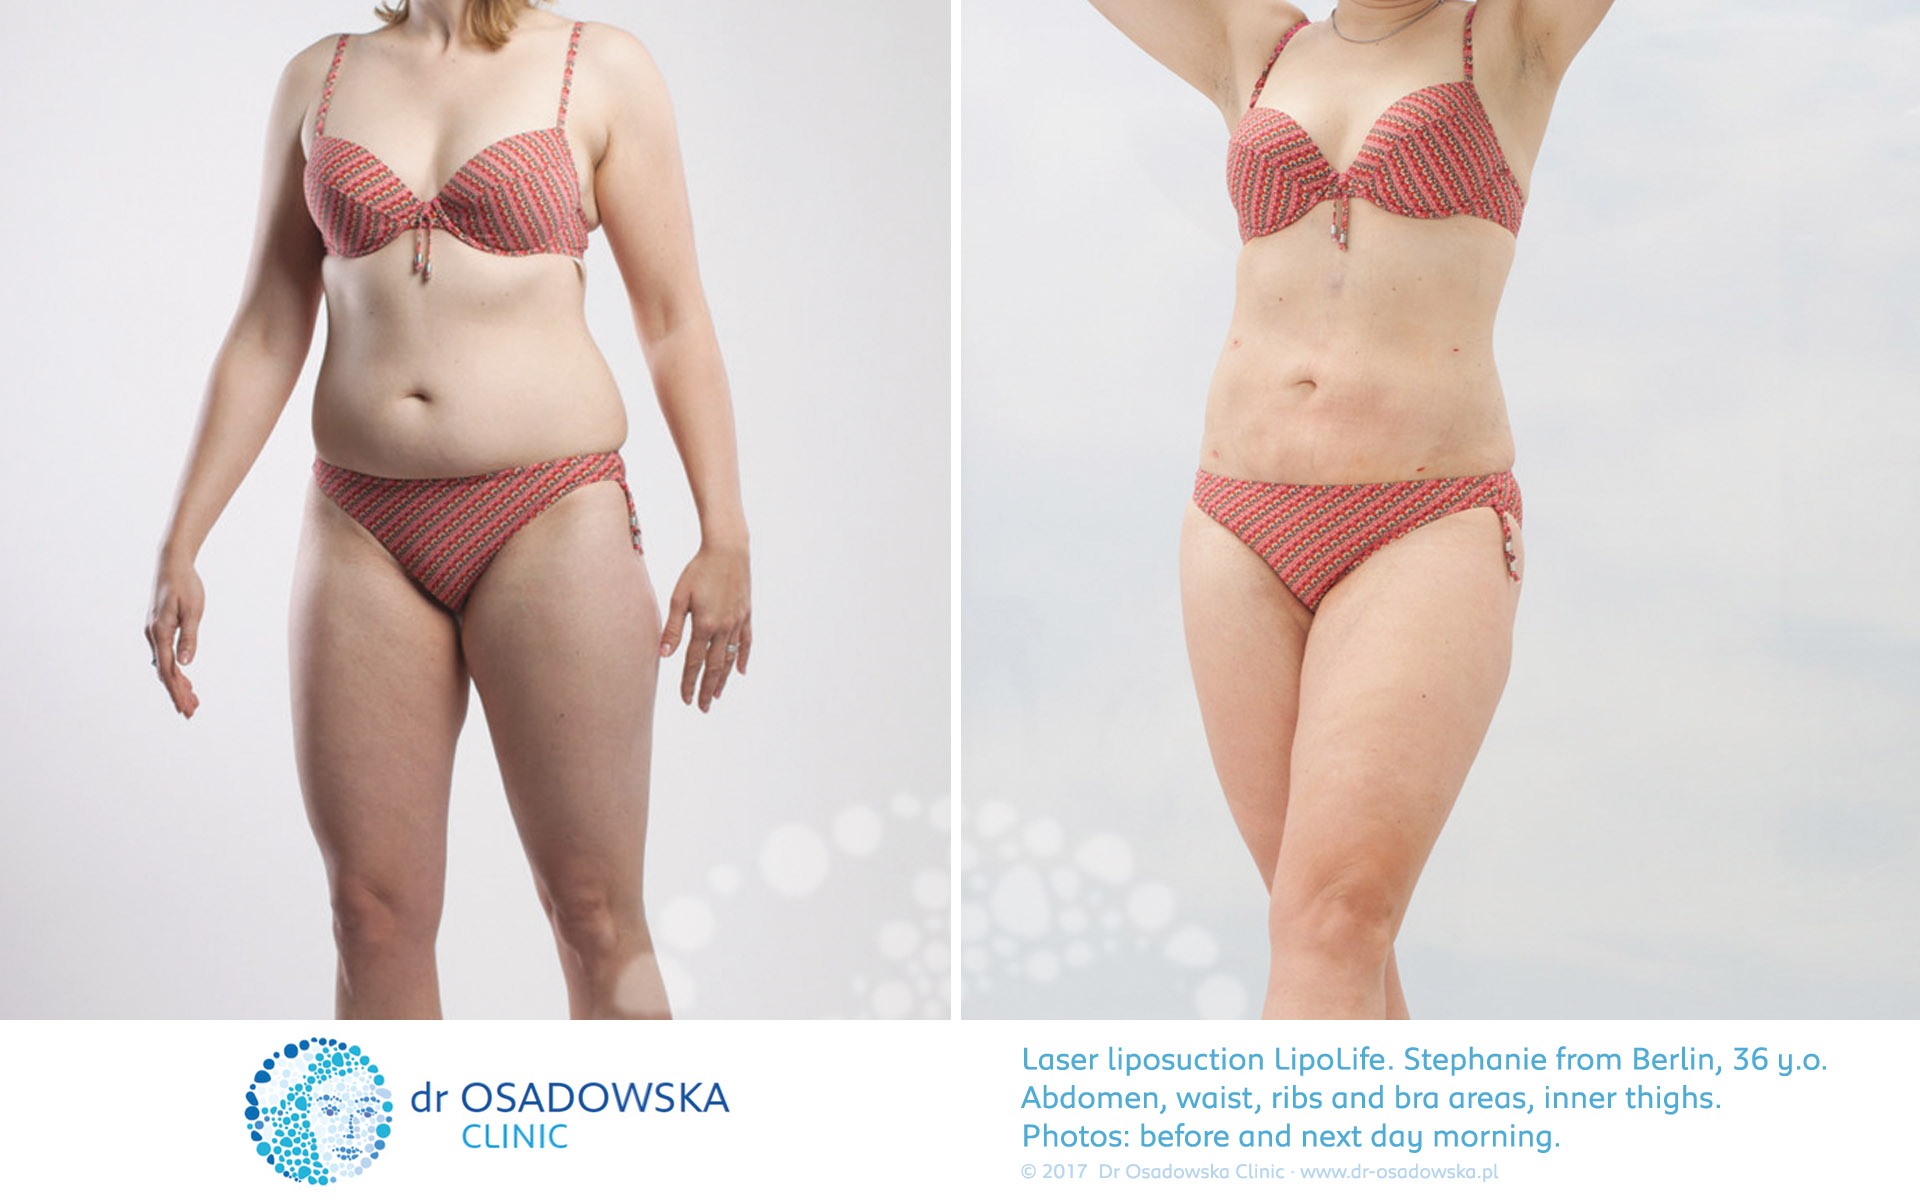 Liposuction LipoLife for abdomen, waist and thighs. Pictures before and 1 day after surgery. Stephanie, a 36 year old from Berlin. View A